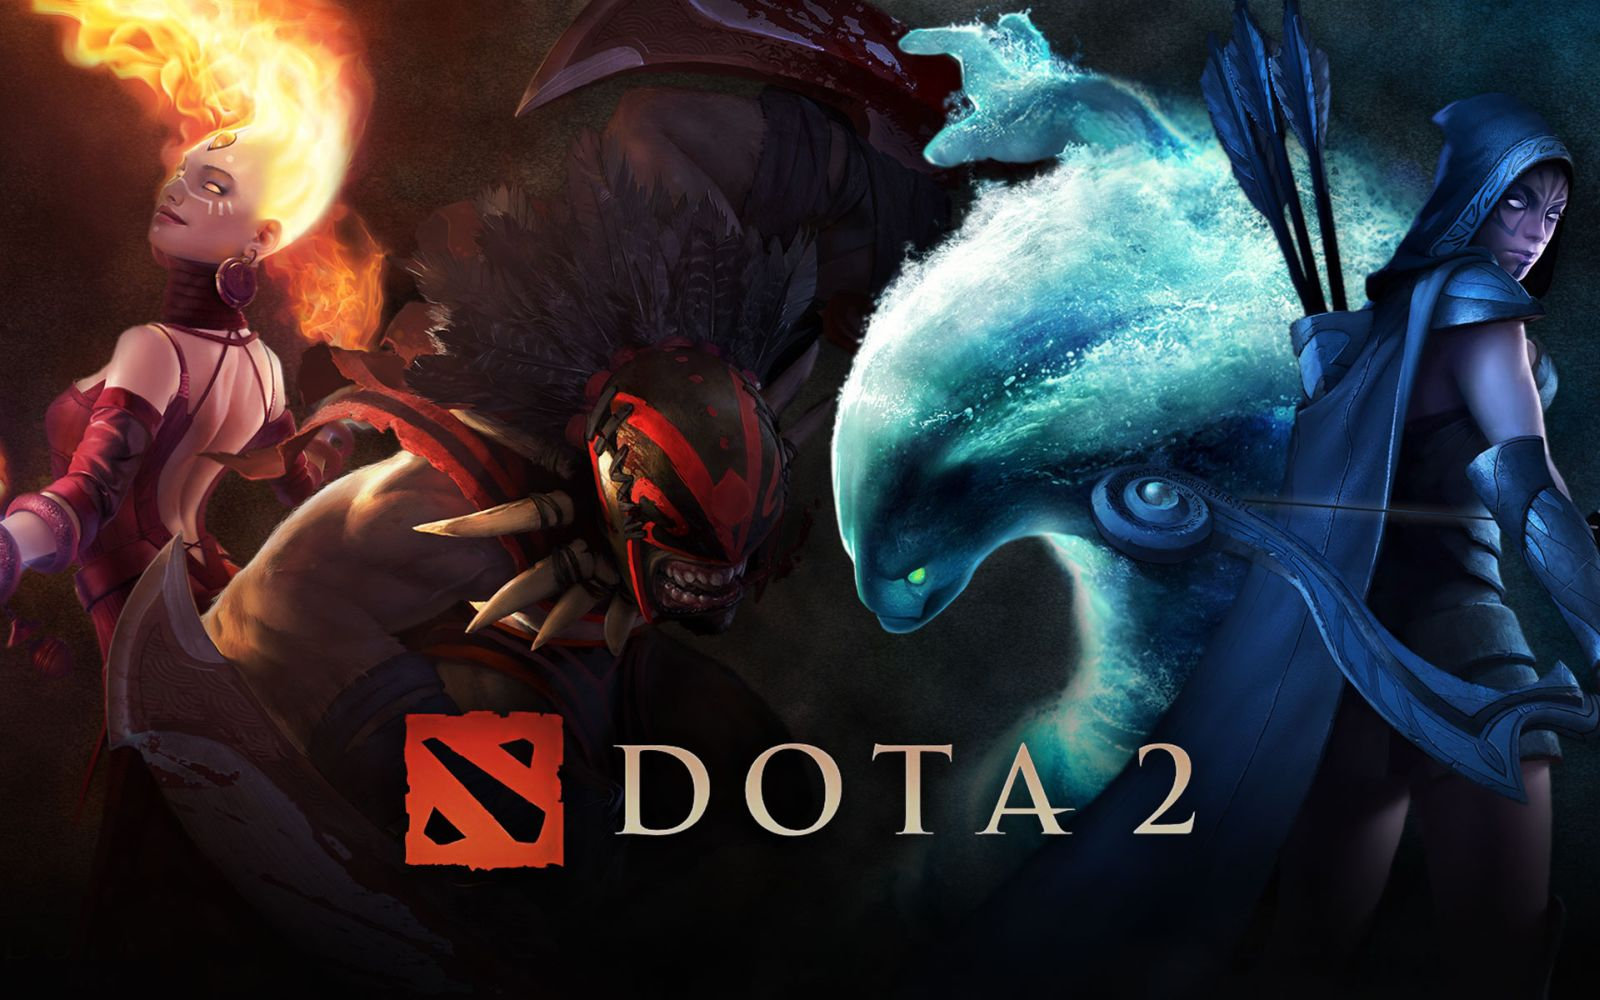 Dota 2: Greatest Dota 2 Comeback Ever? > GamersBook